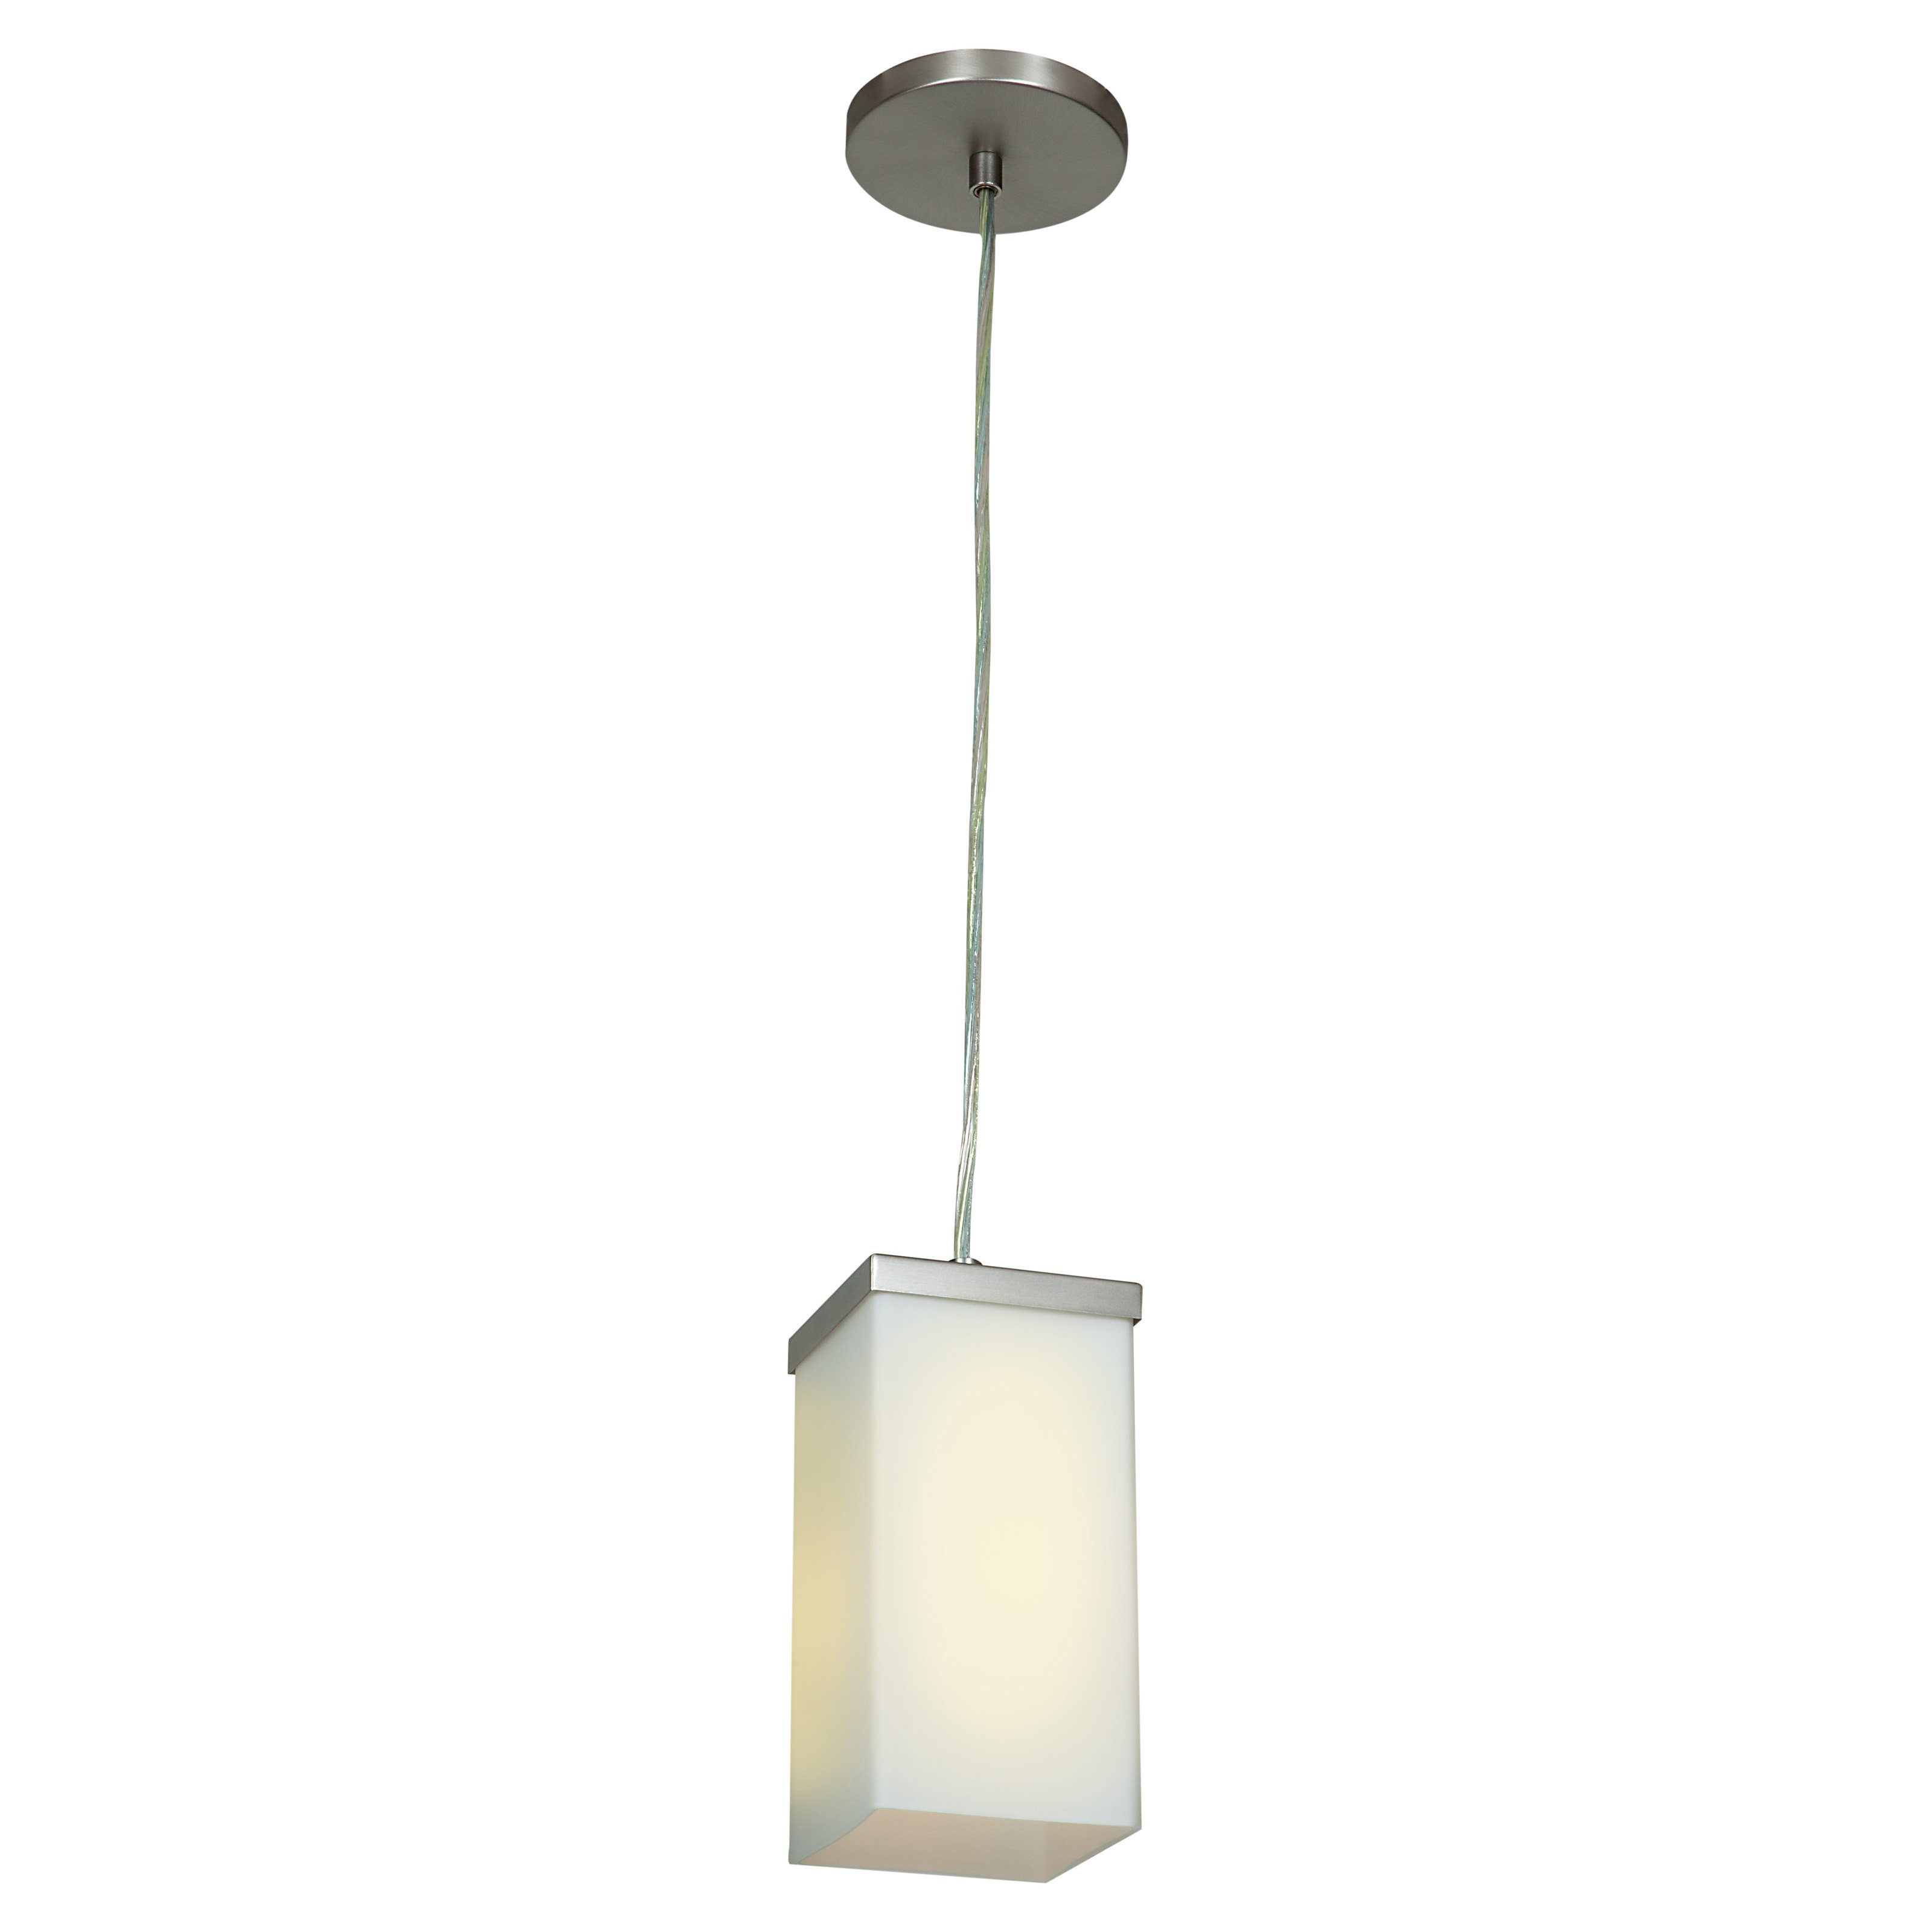 Access Lighting Basik 23638 Pendant by Access